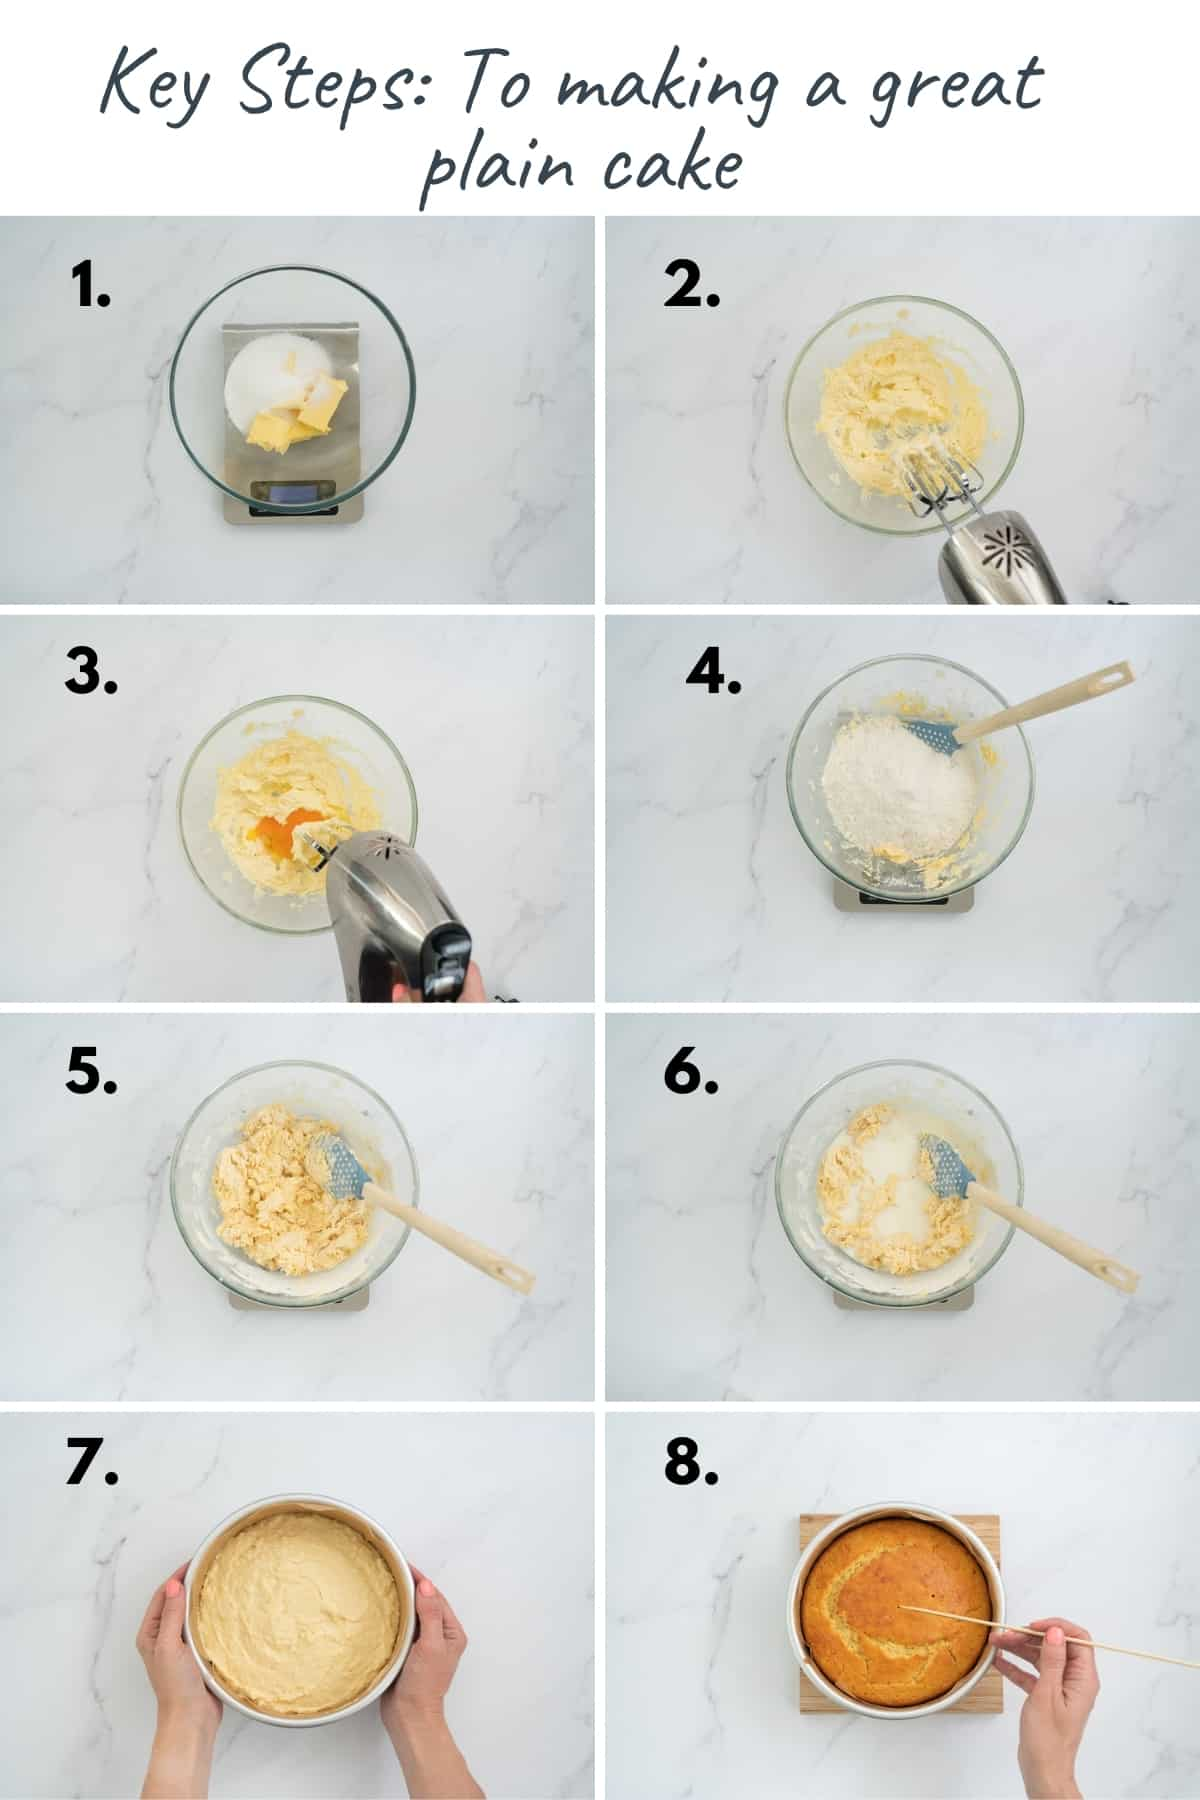 8 photo collage showing the steps to making a plain cake recipe